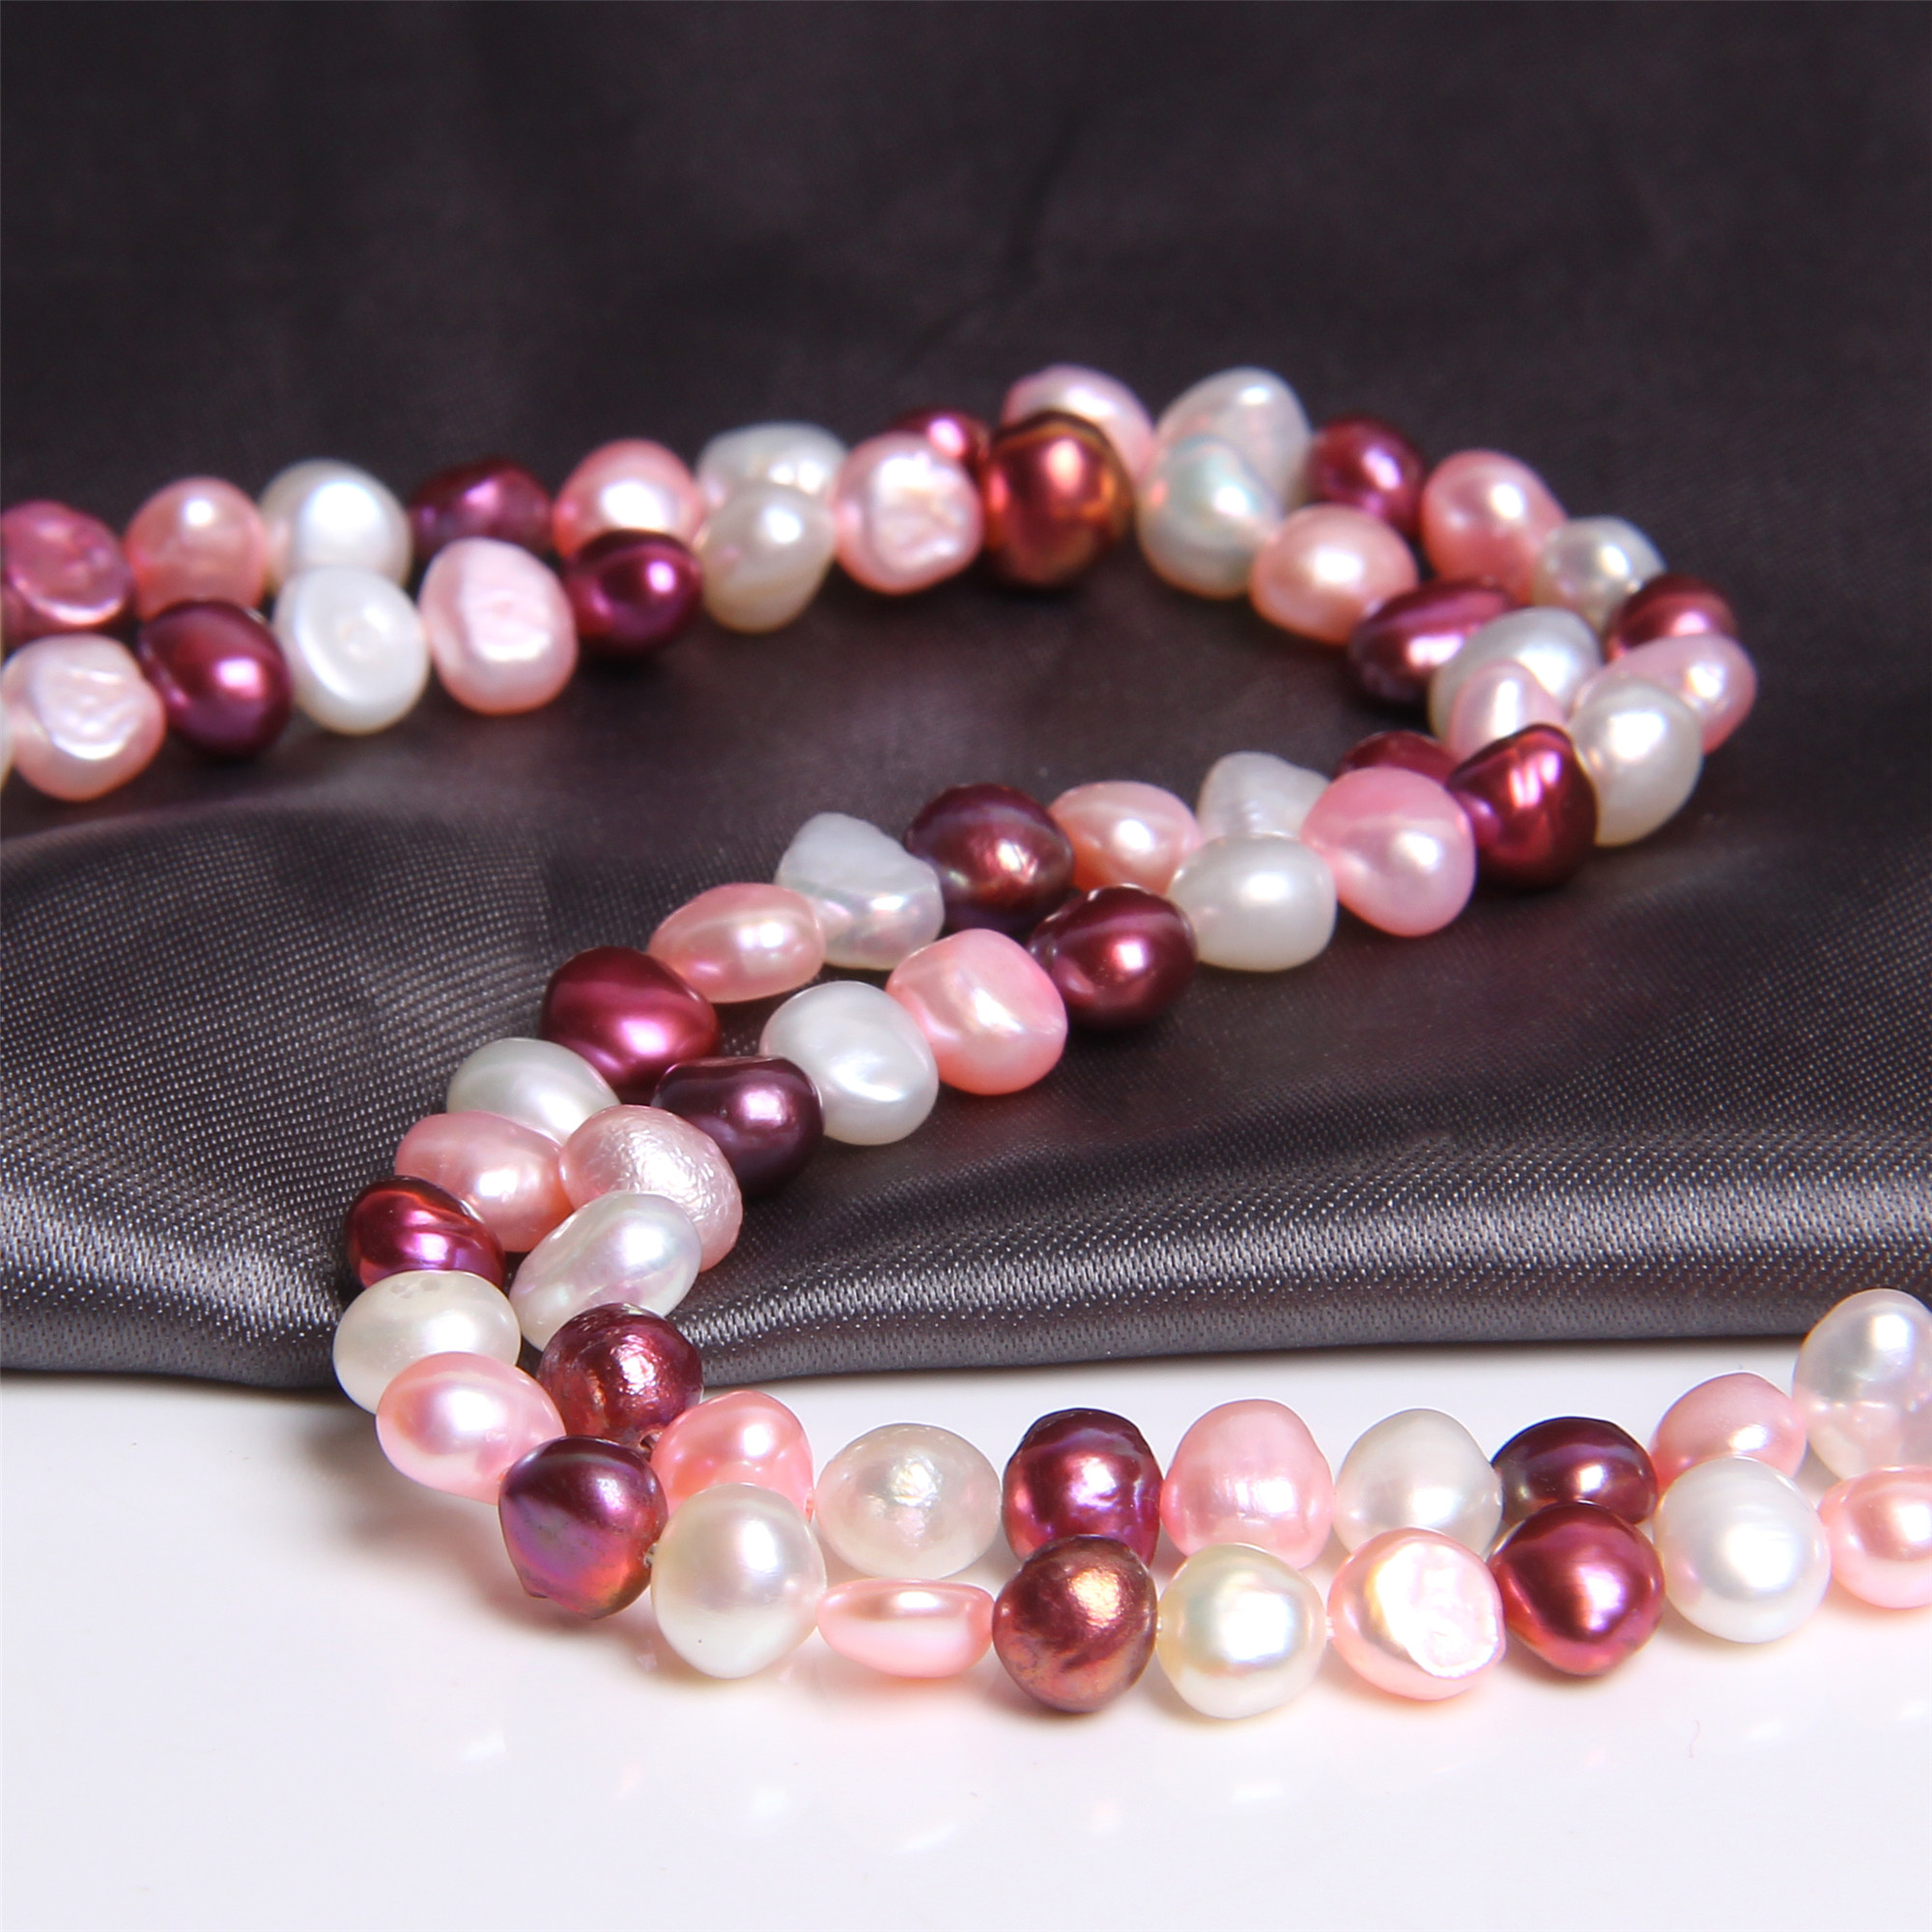 """5-6mm Natural Baroque Pearls Multi Color Real Freshwater Pearl Potato Red Pink Mix Loose Perle Beads For Jewelry Making 14"""" DIY"""